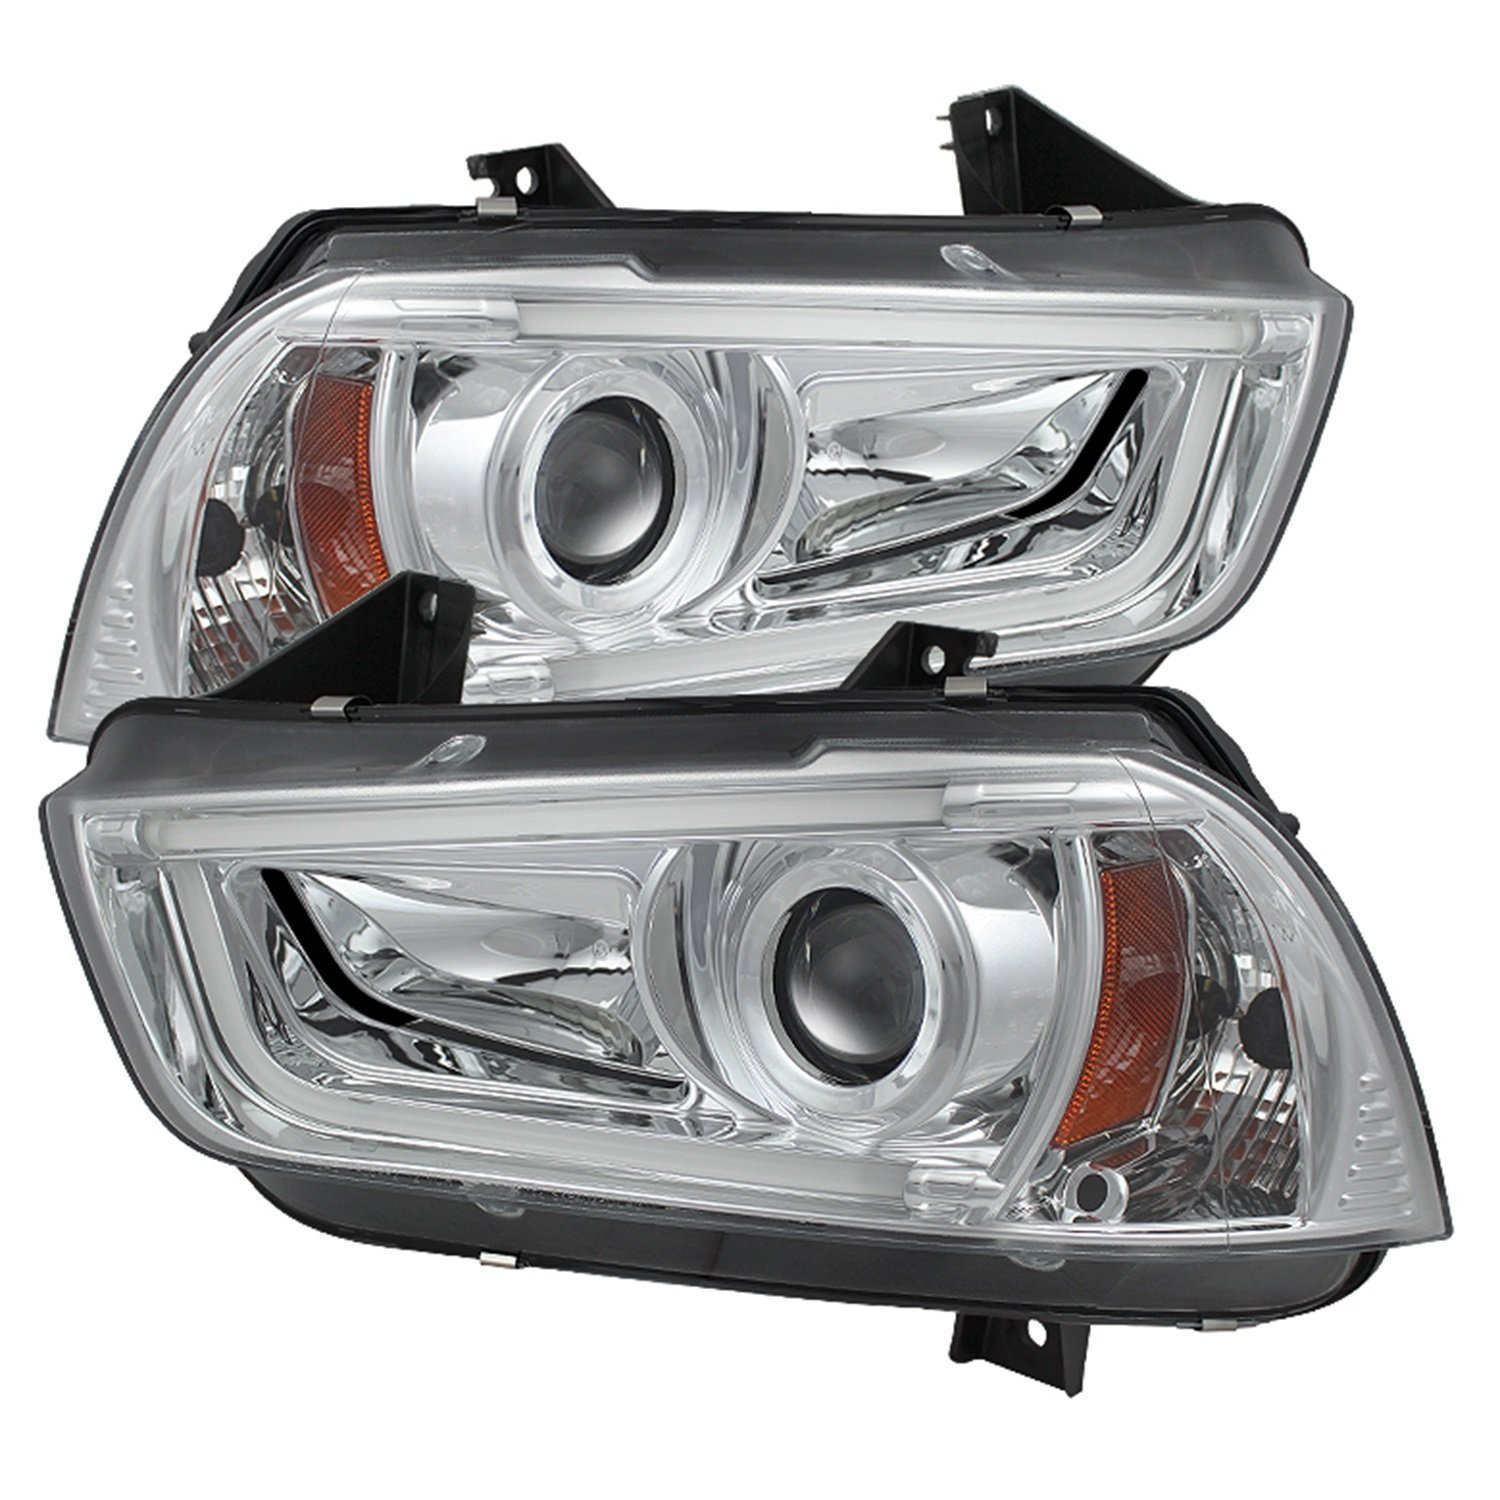 Spyder Auto (PRO-YD-DCH11-LTDRL-C) Dodge Charger Projector Headlight